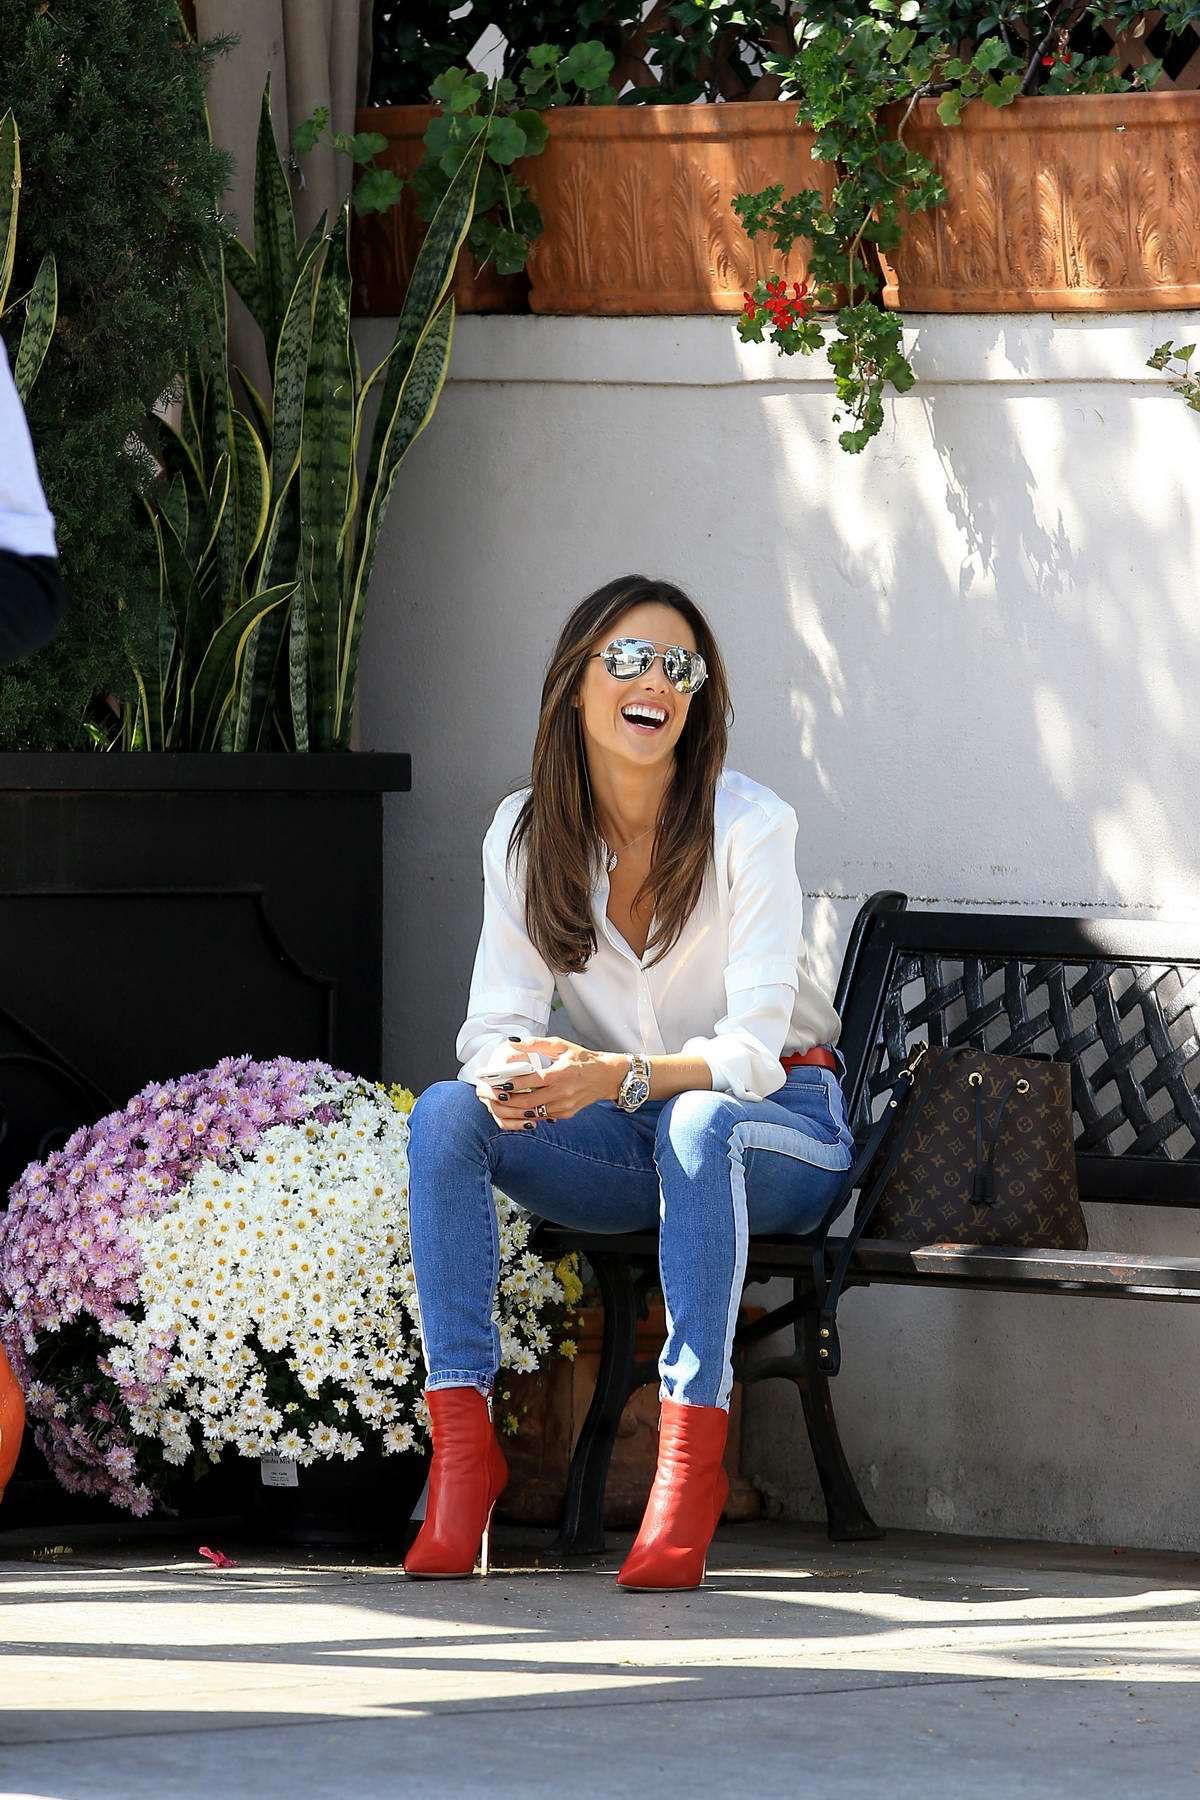 Alessandra Ambrosio was spotted having lunch at Il Pastaio Restaurant in Beverly Hills, Los Angeles